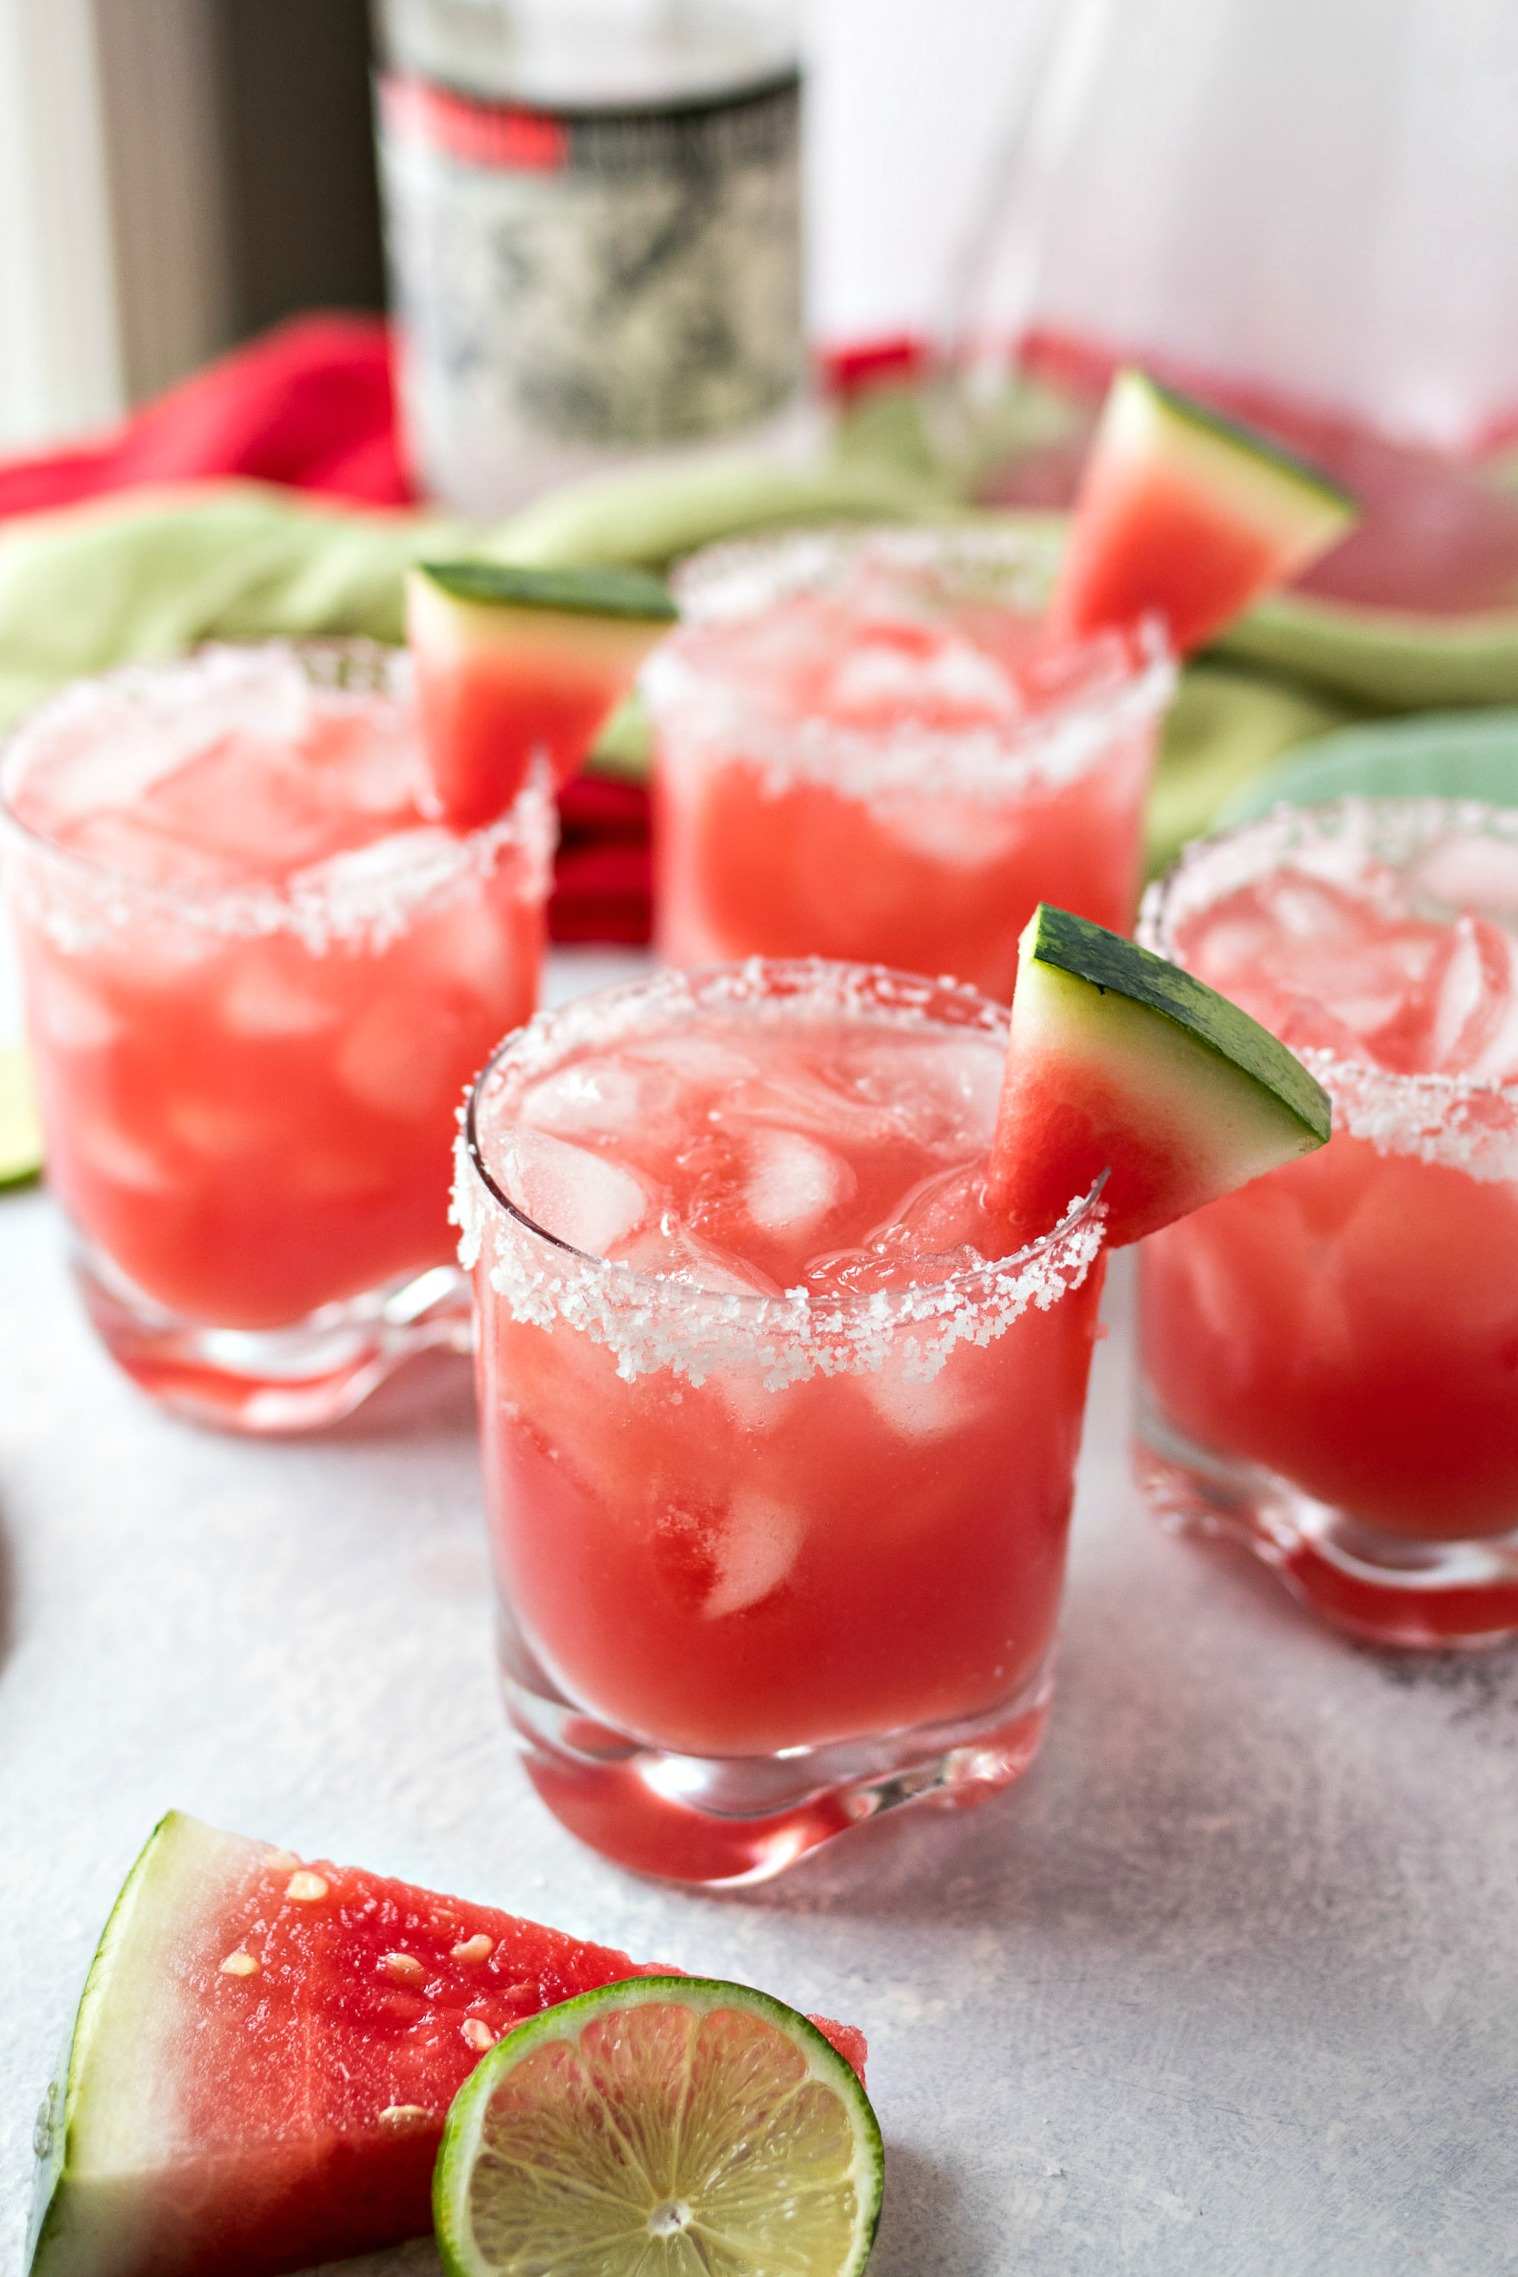 Glasses of Watermelon Margarita